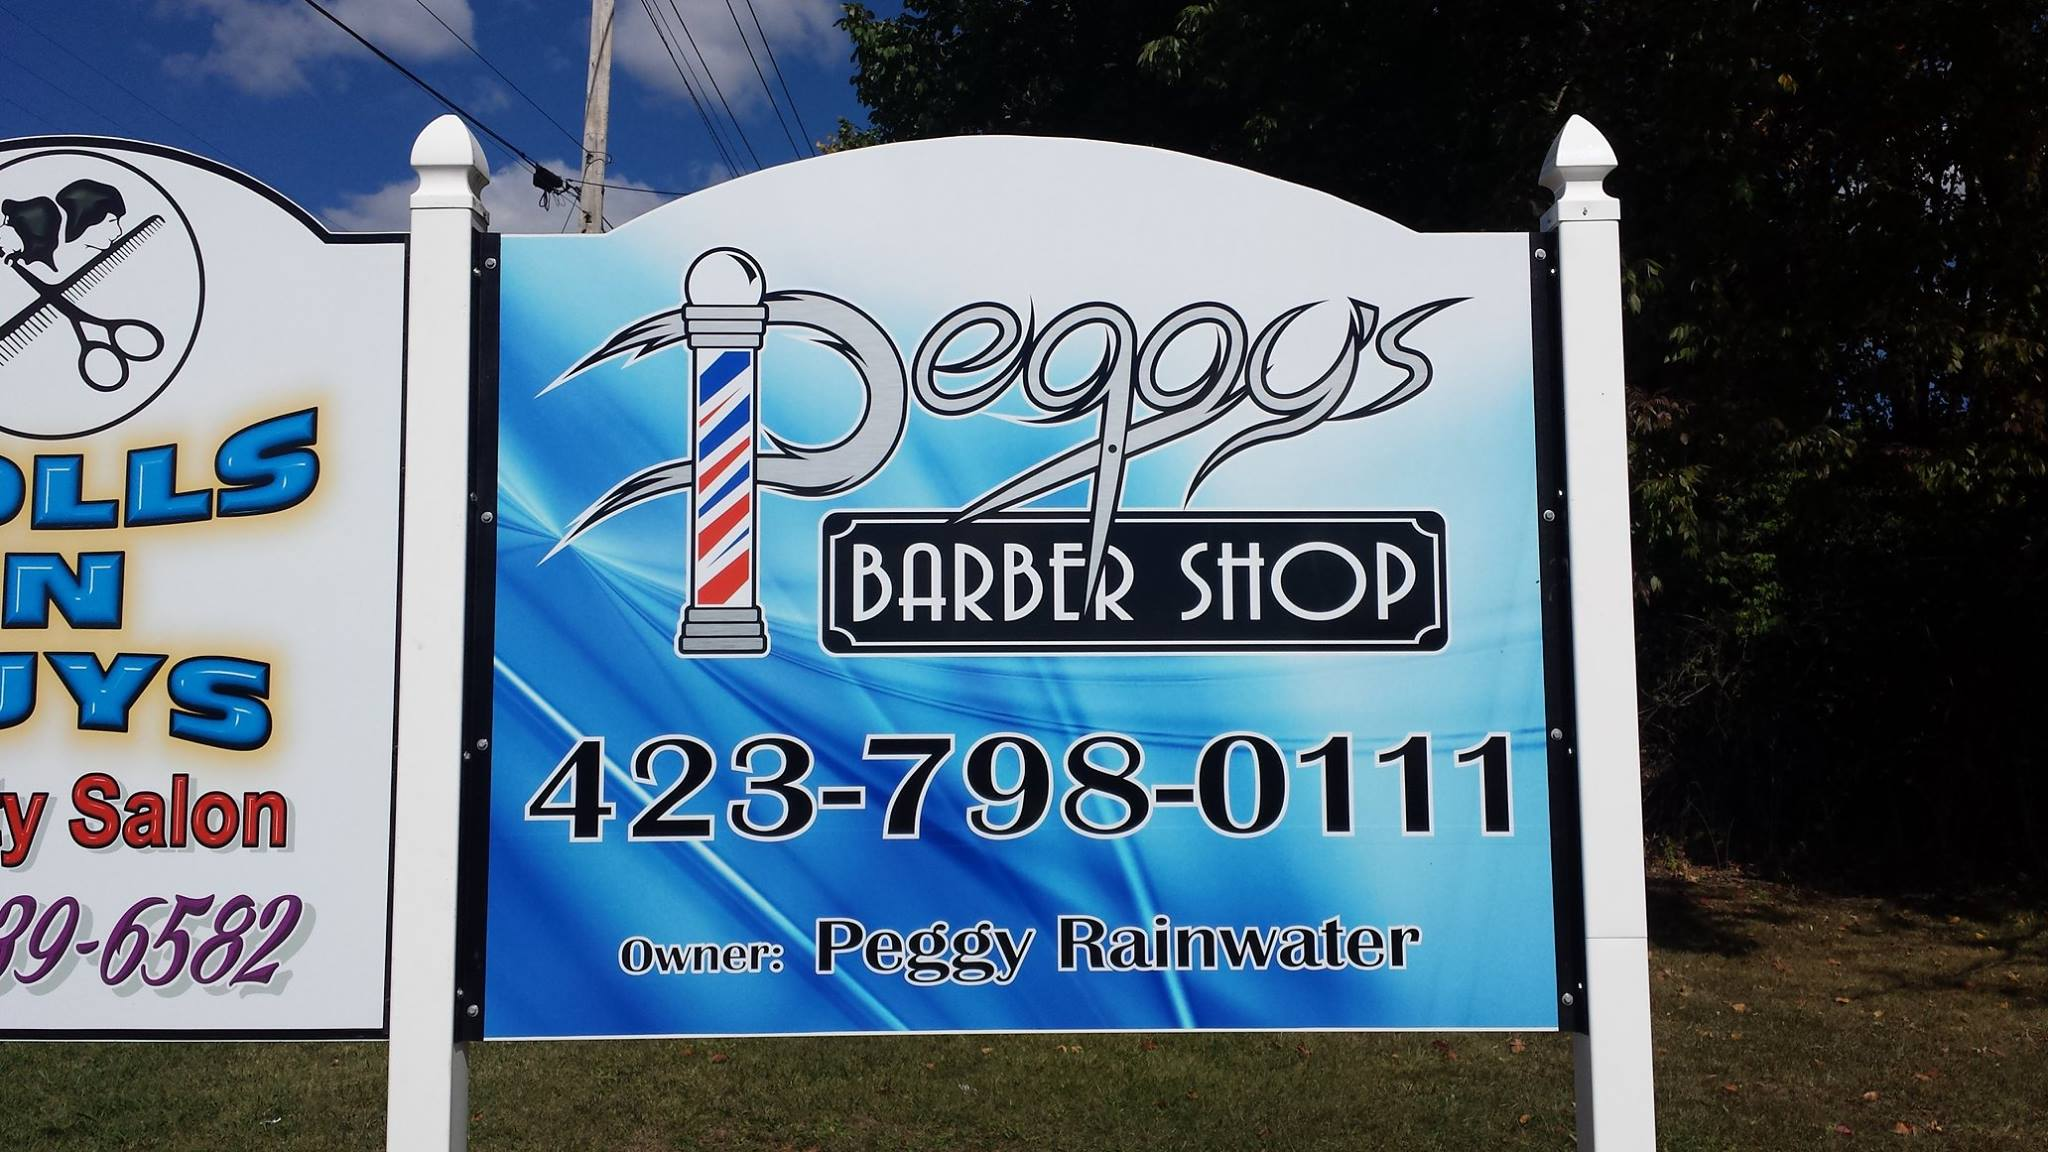 Peggy's Barber Shop